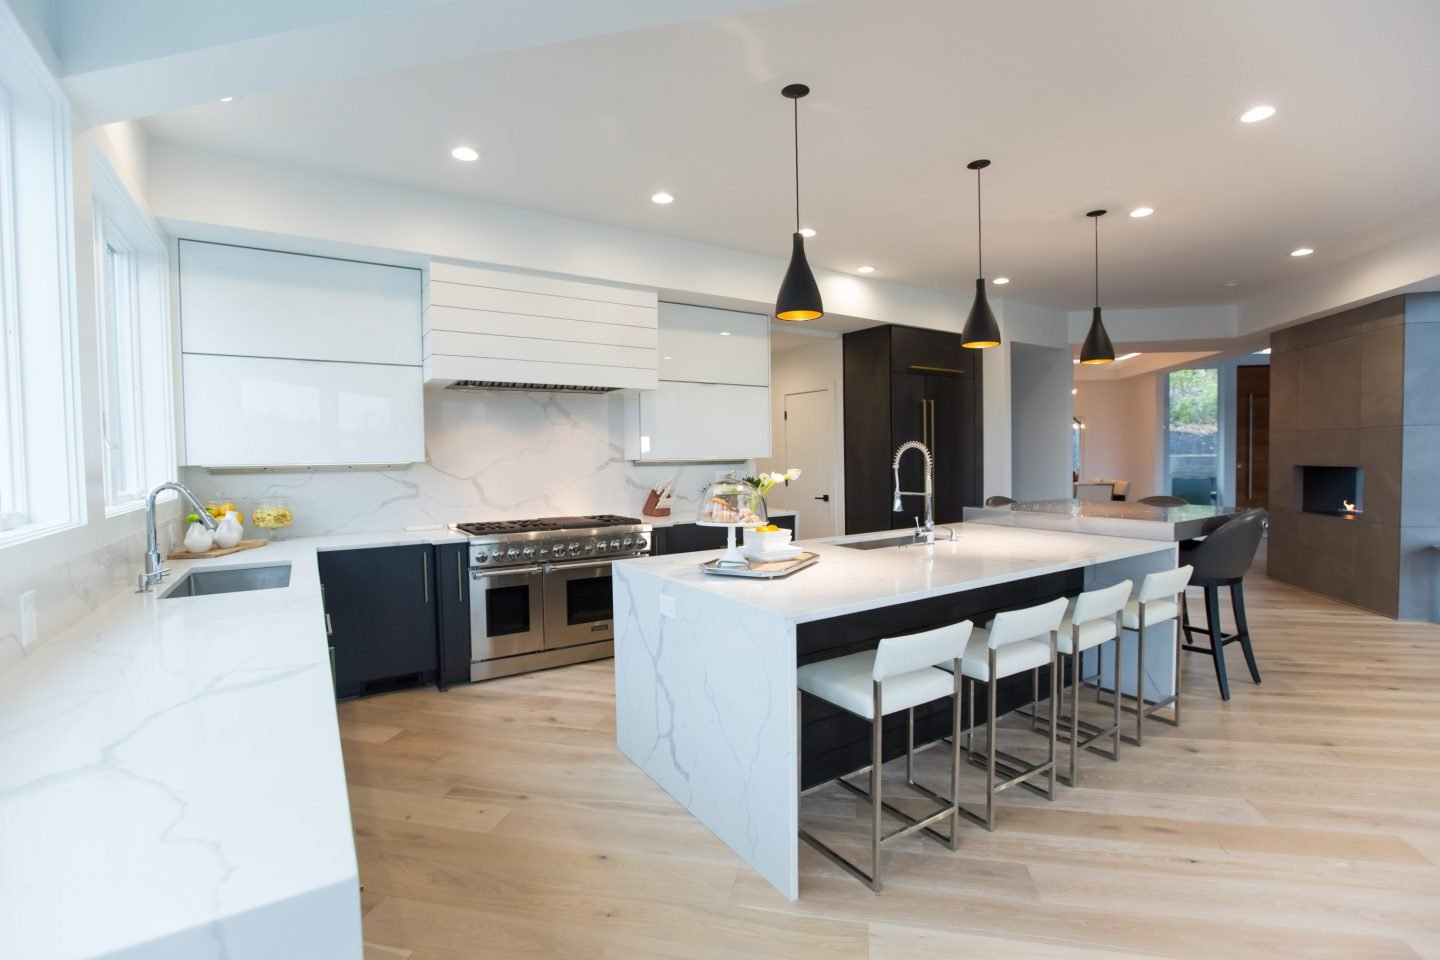 Sea Star Kitchen Remodel Fishers Before And After Photos Aco